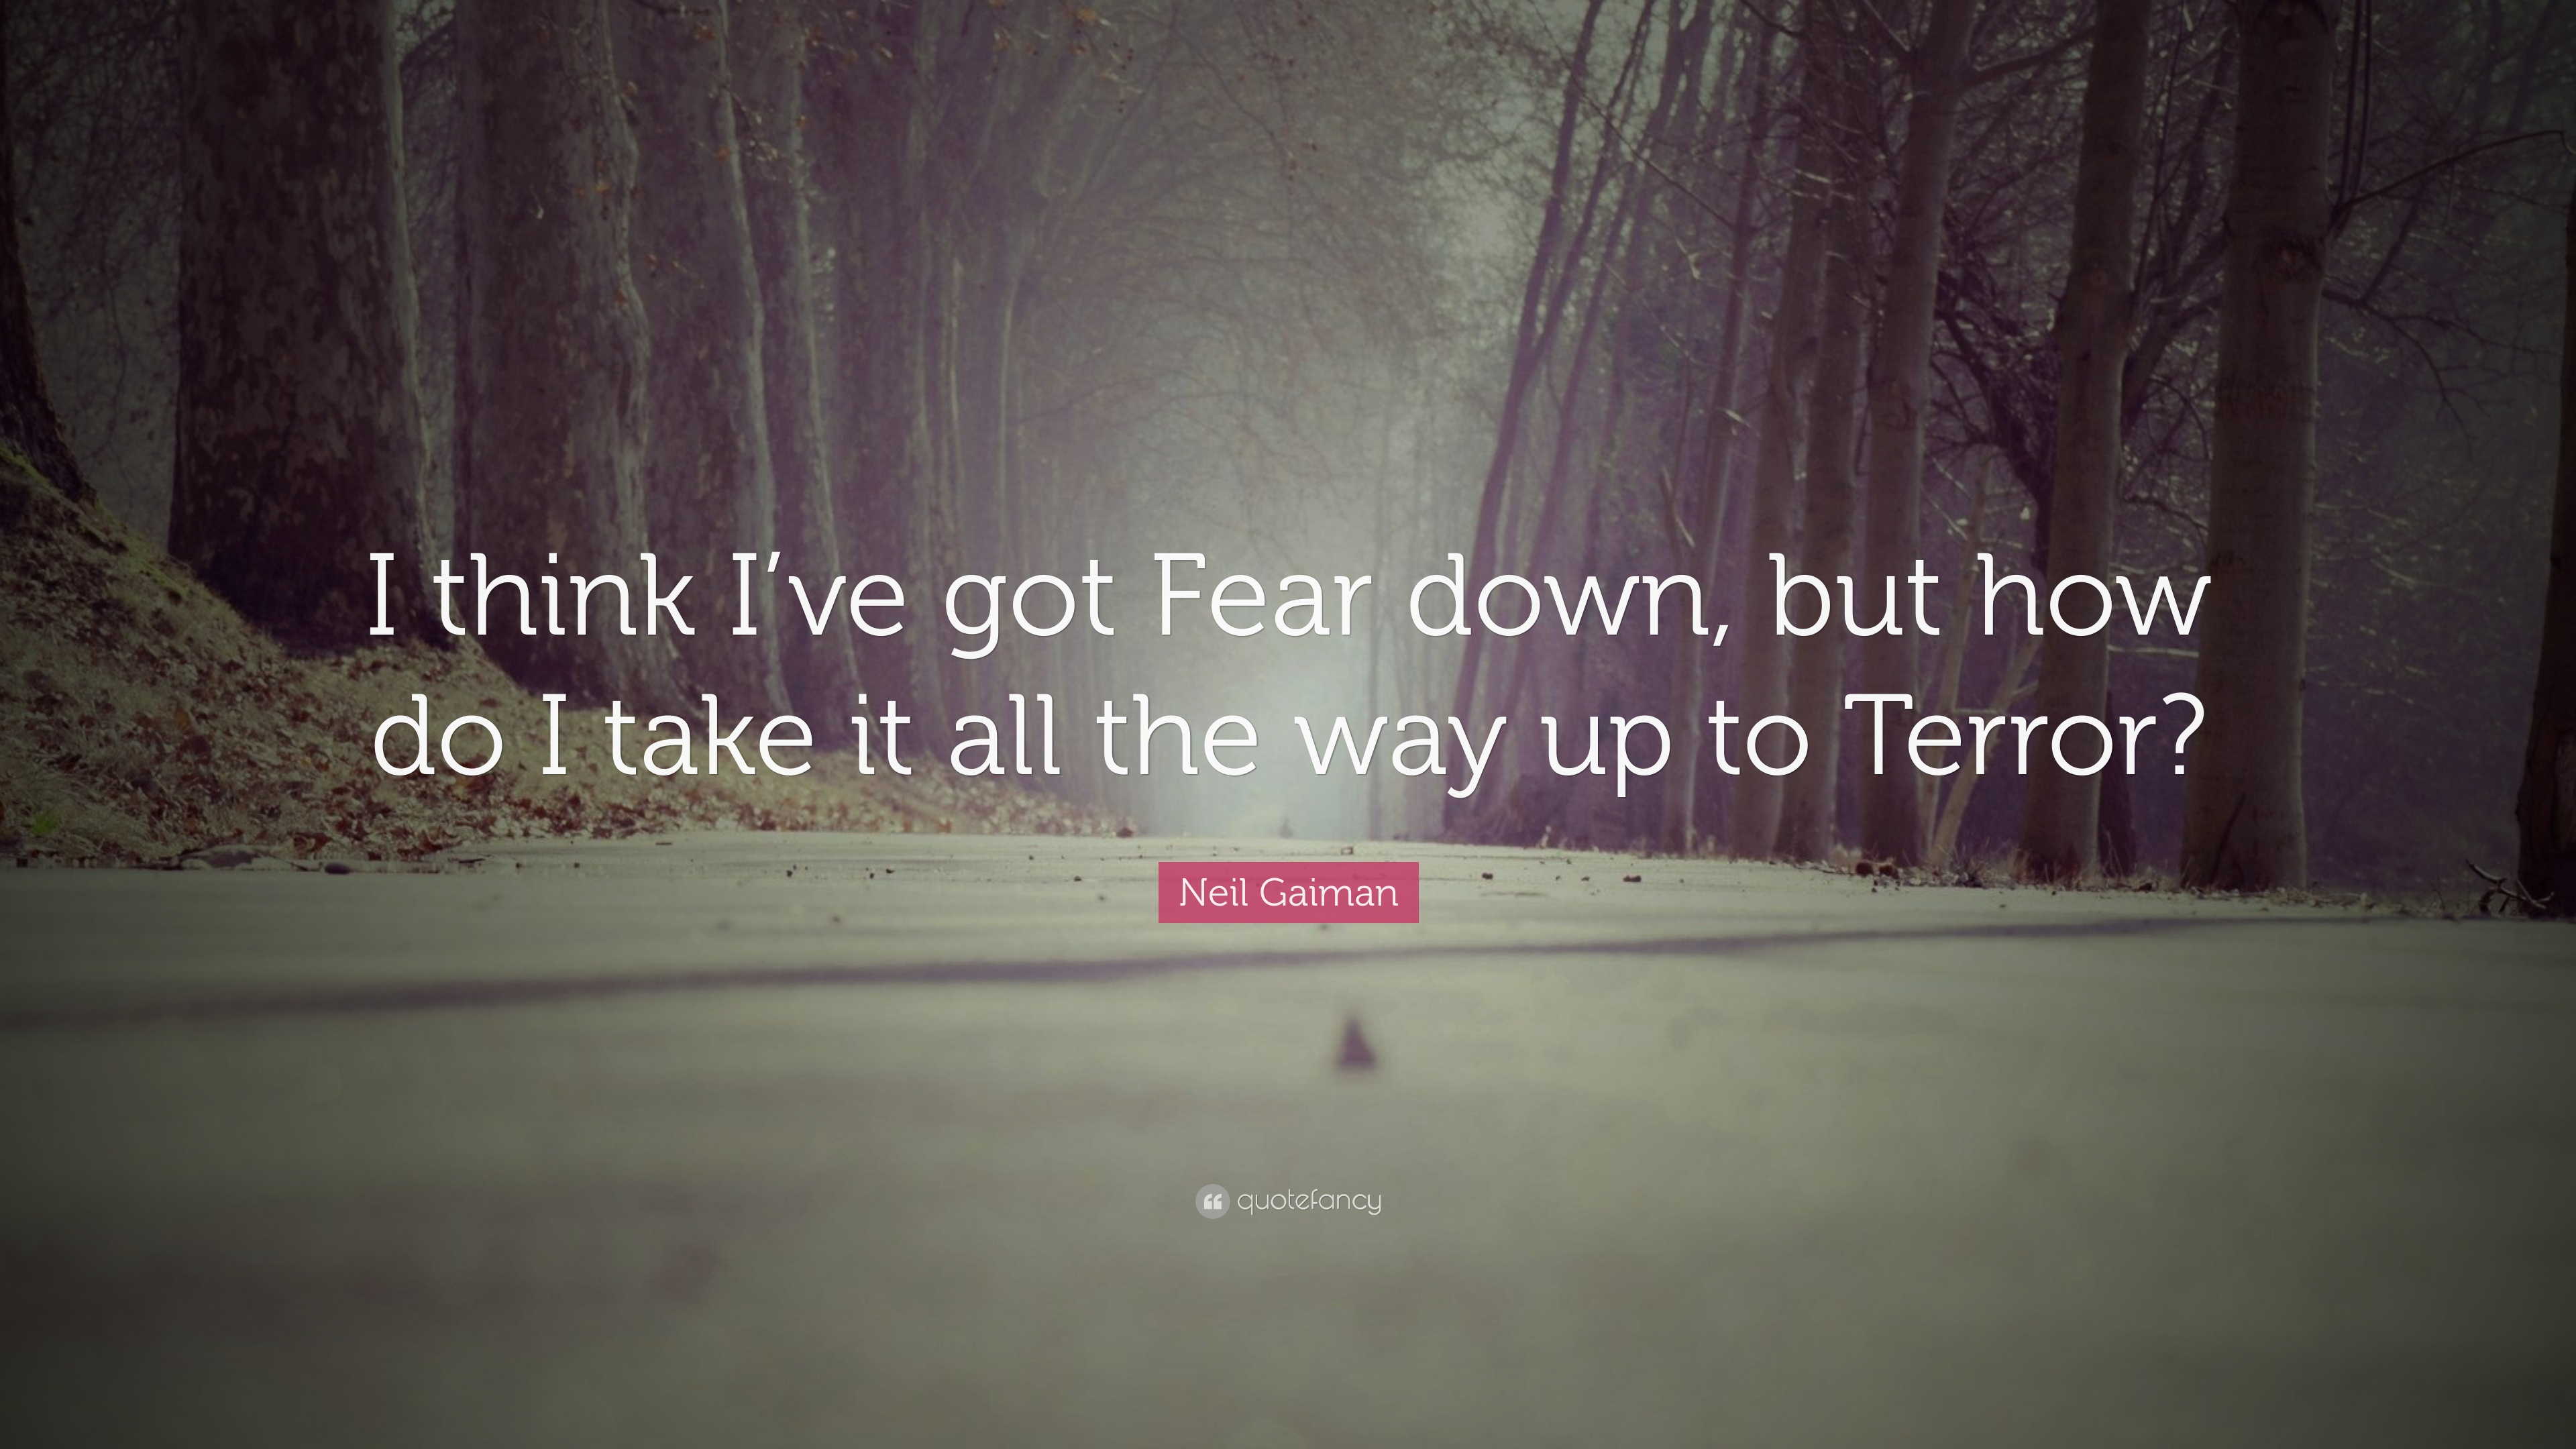 neil gaiman quote i think i ve got fear down but how do